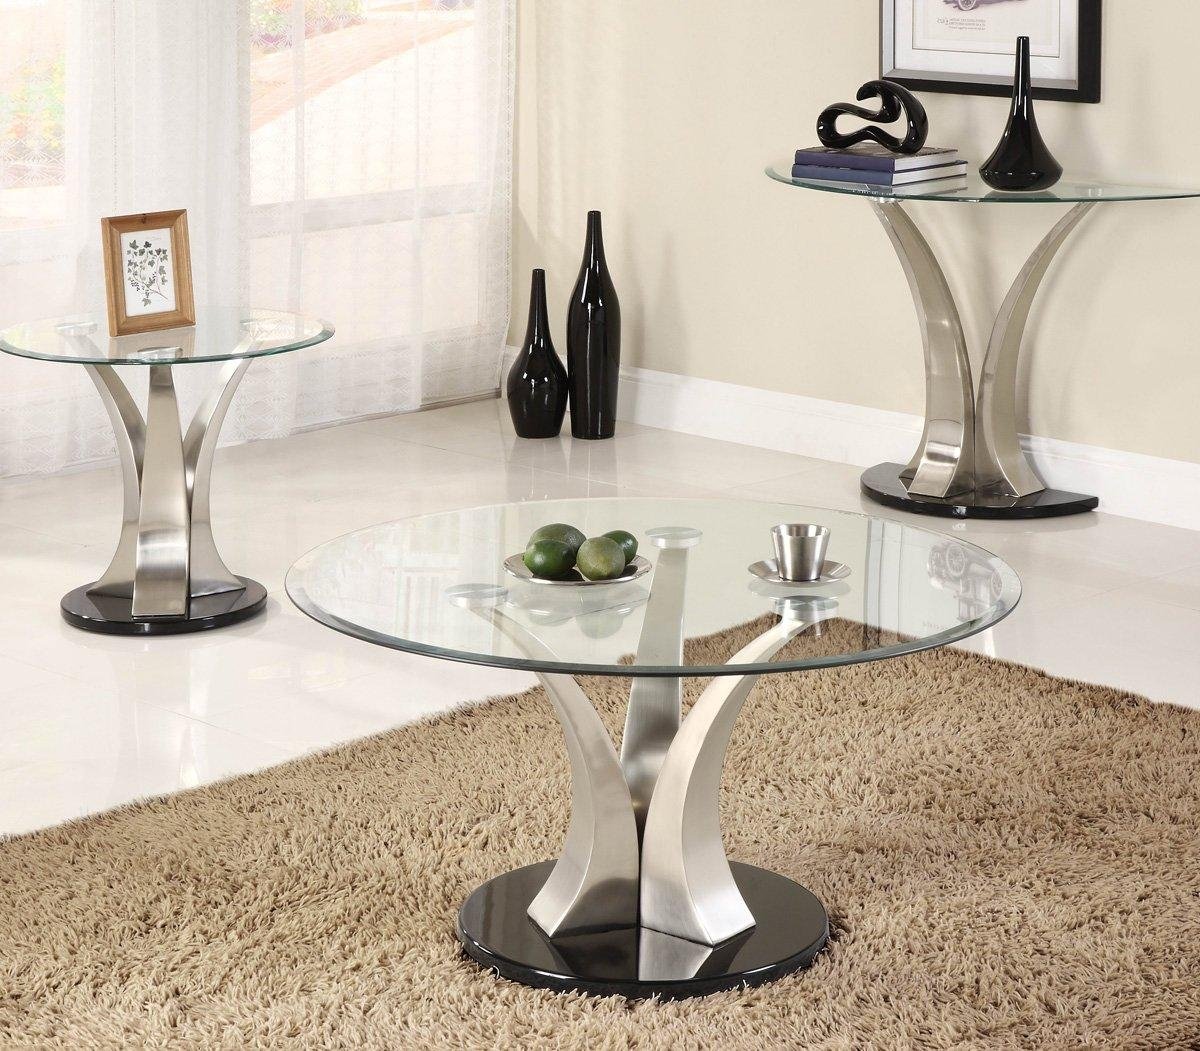 Chrome And Glass Sofa Table 90 With Chrome And Glass Sofa Table With Chrome Sofa Tables (Image 3 of 20)